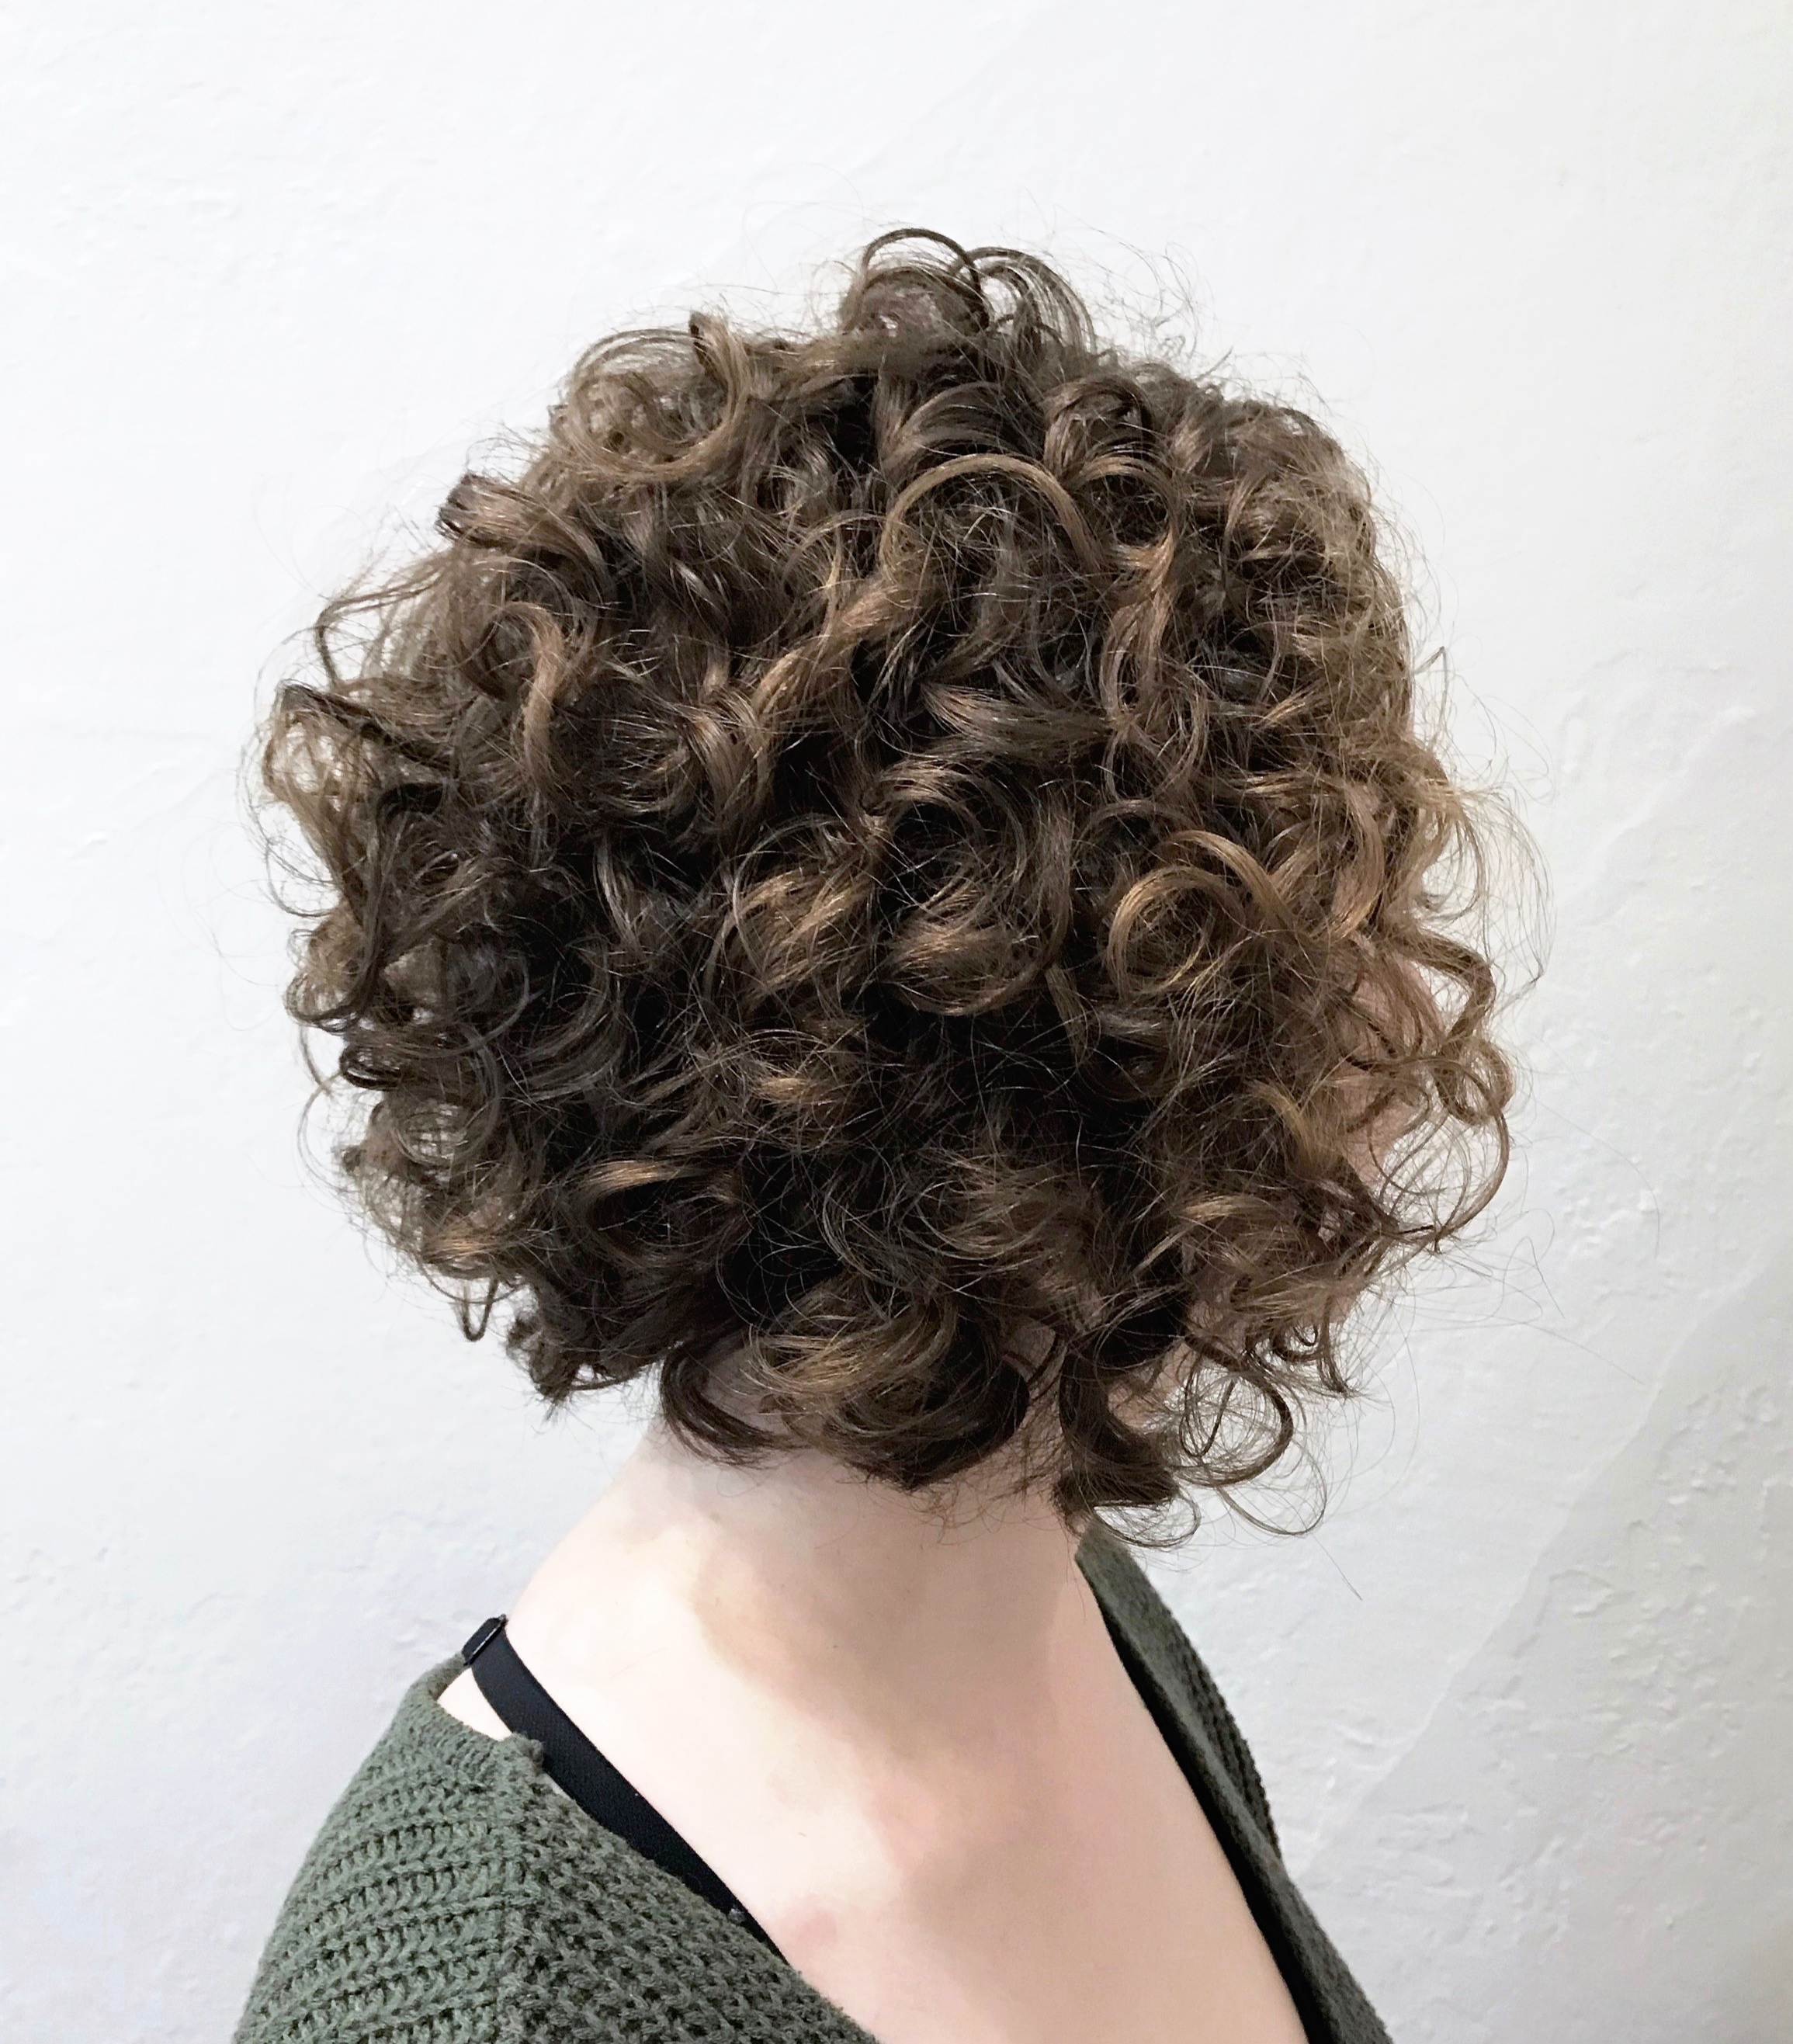 CurlyHair - 19.jpg